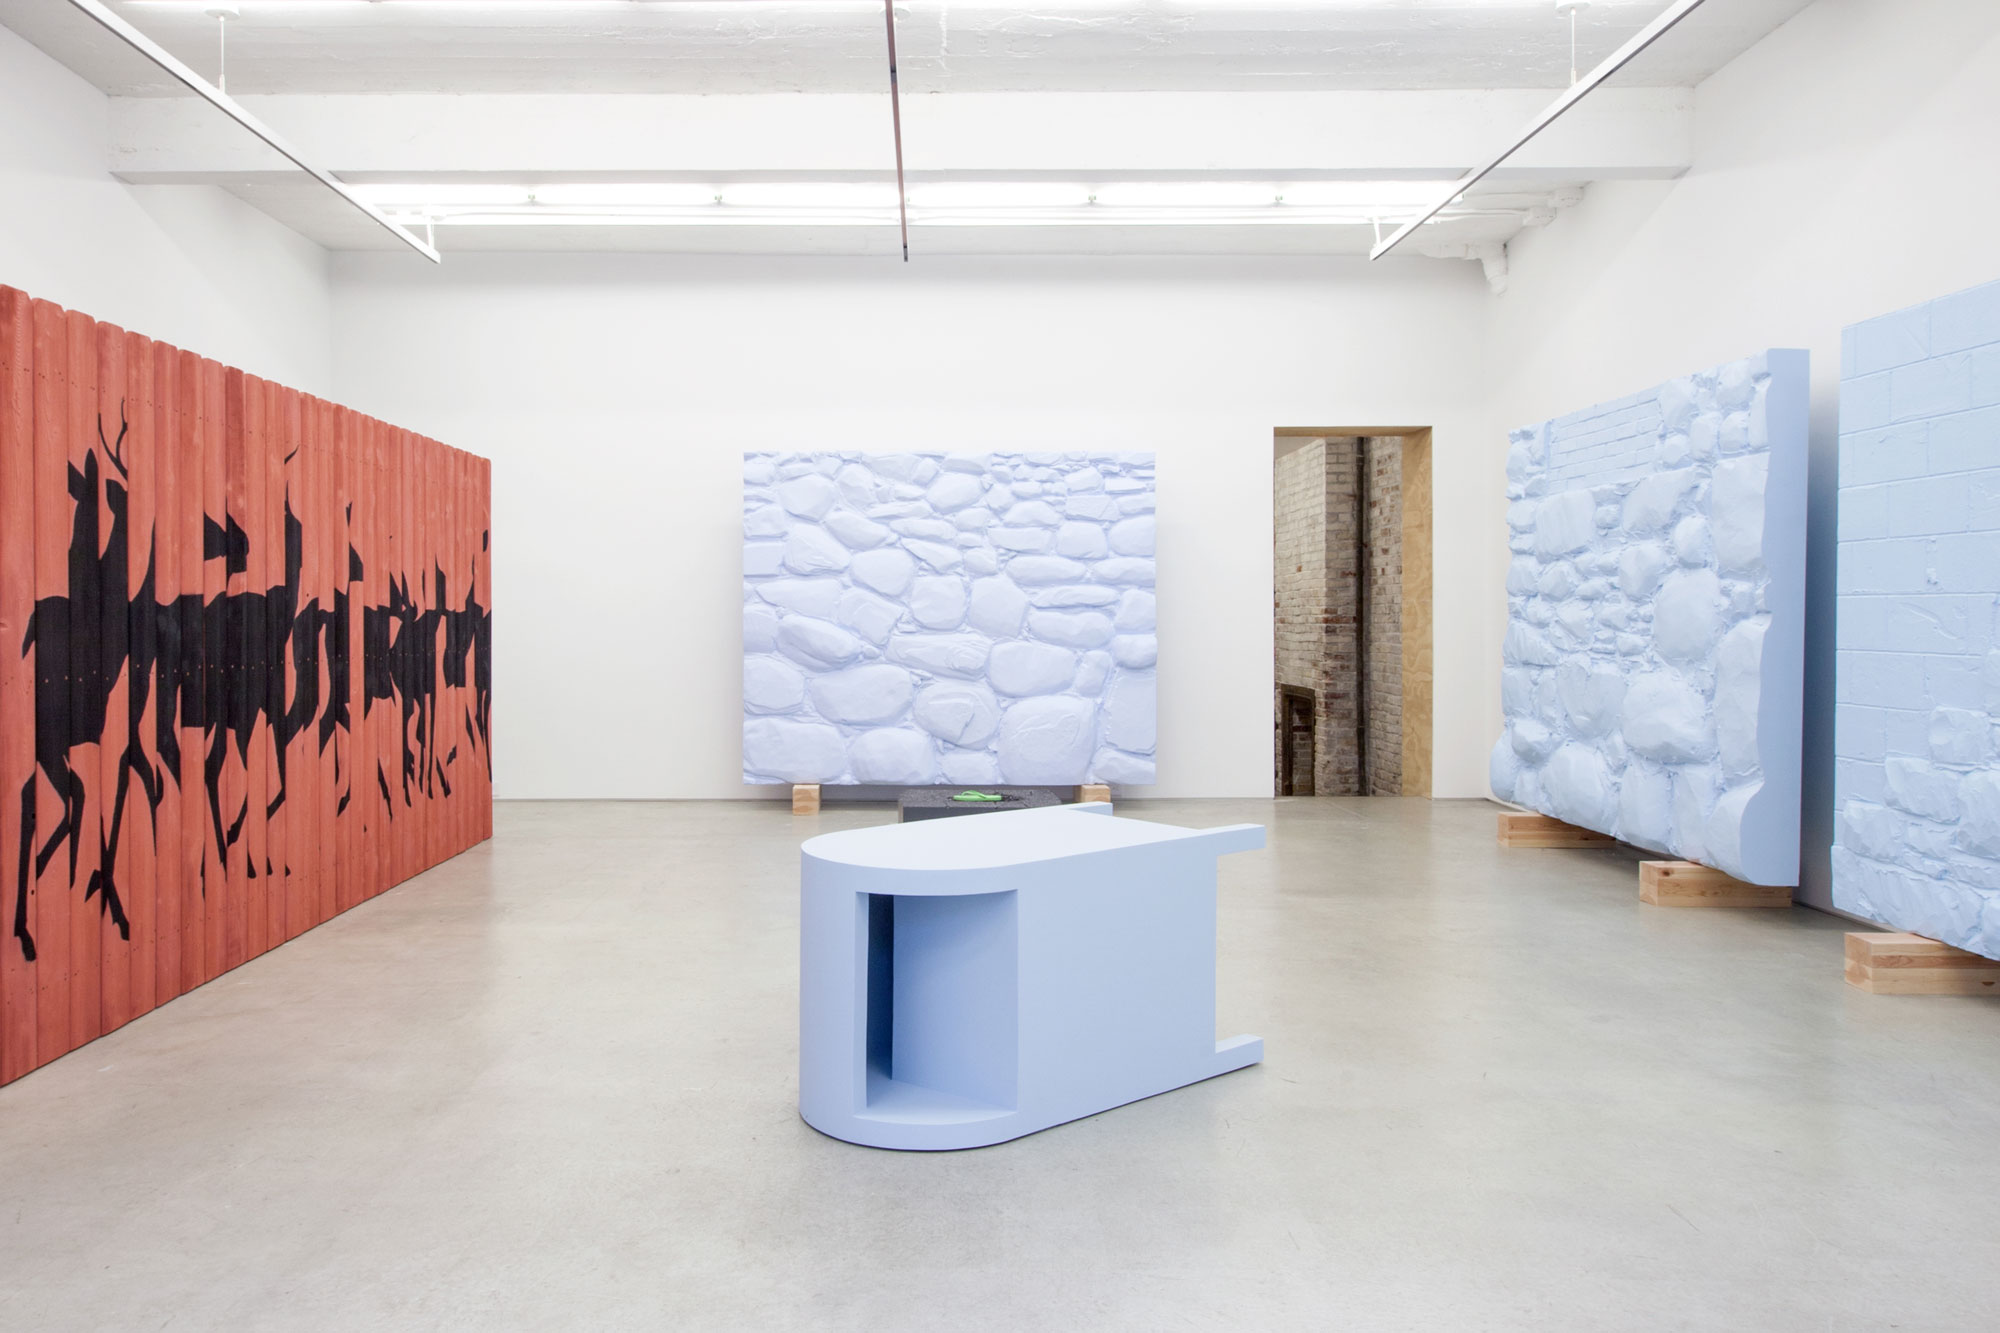 Installation view, Discrete Pieces, Launch F18, New York, NY, 2016